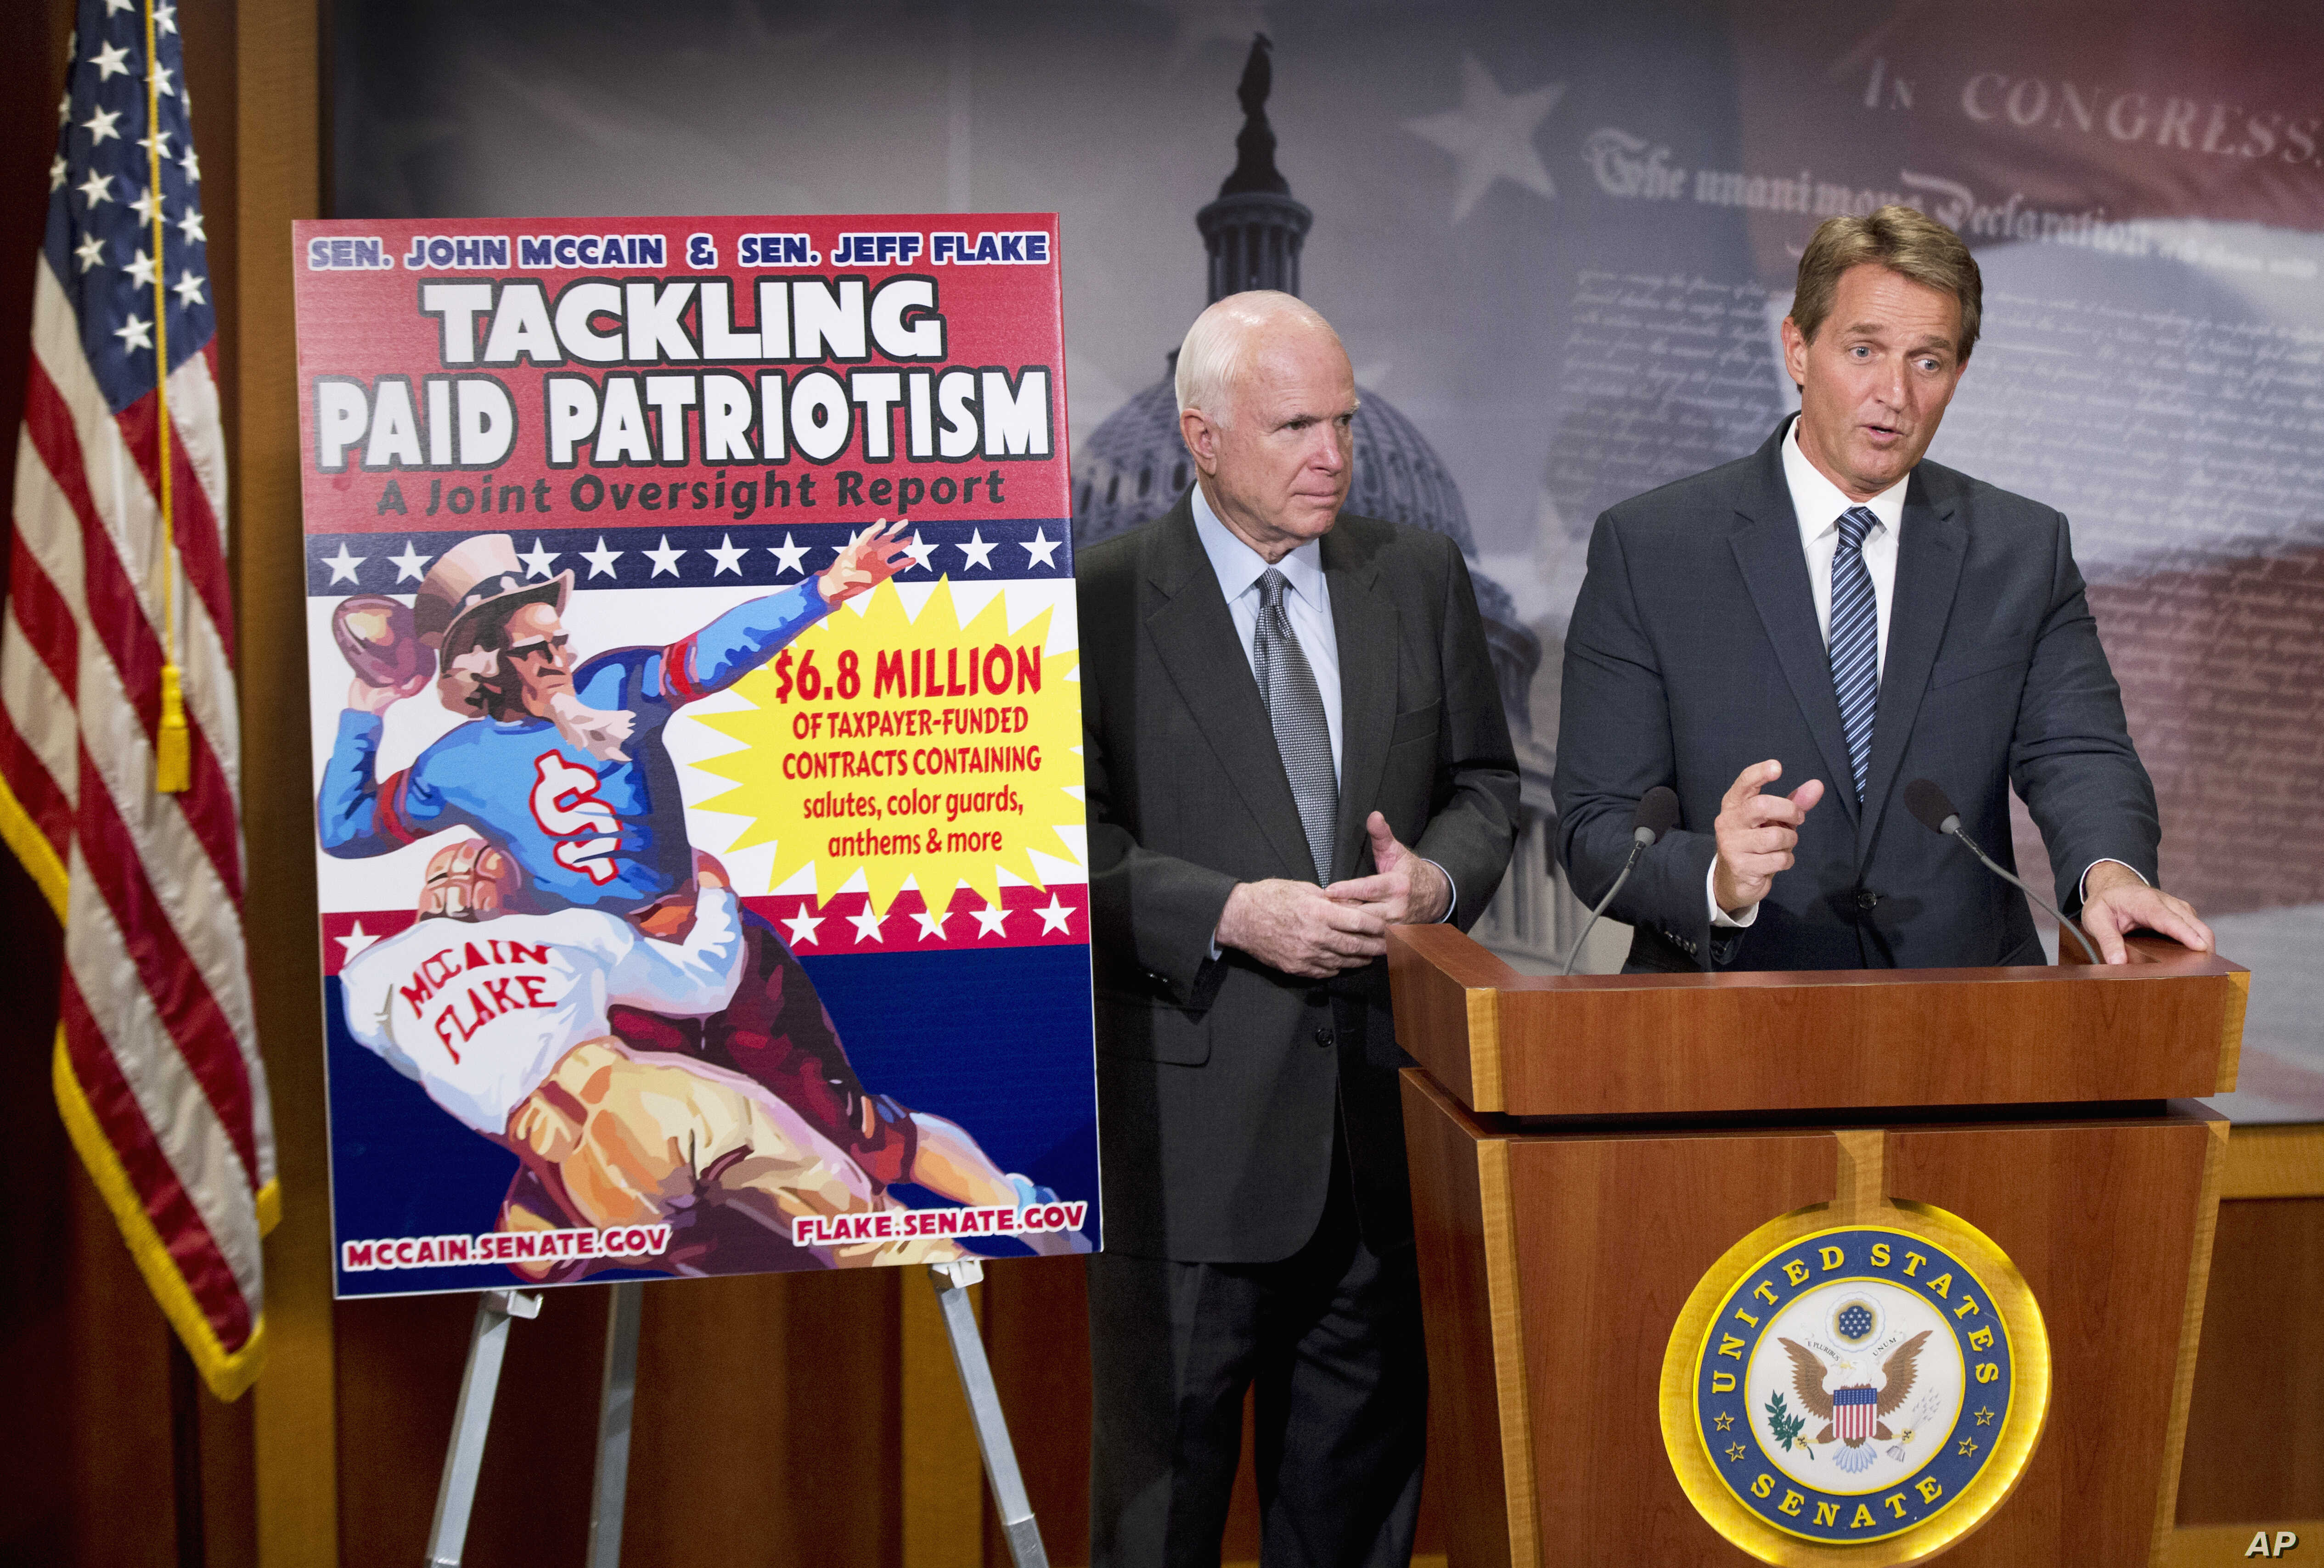 """Senators John McCain, left, and Jeff Flake talk to reporters about """"paid patriotism"""" during a news conference on Capitol Hill in Washington, Nov. 4, 2015."""